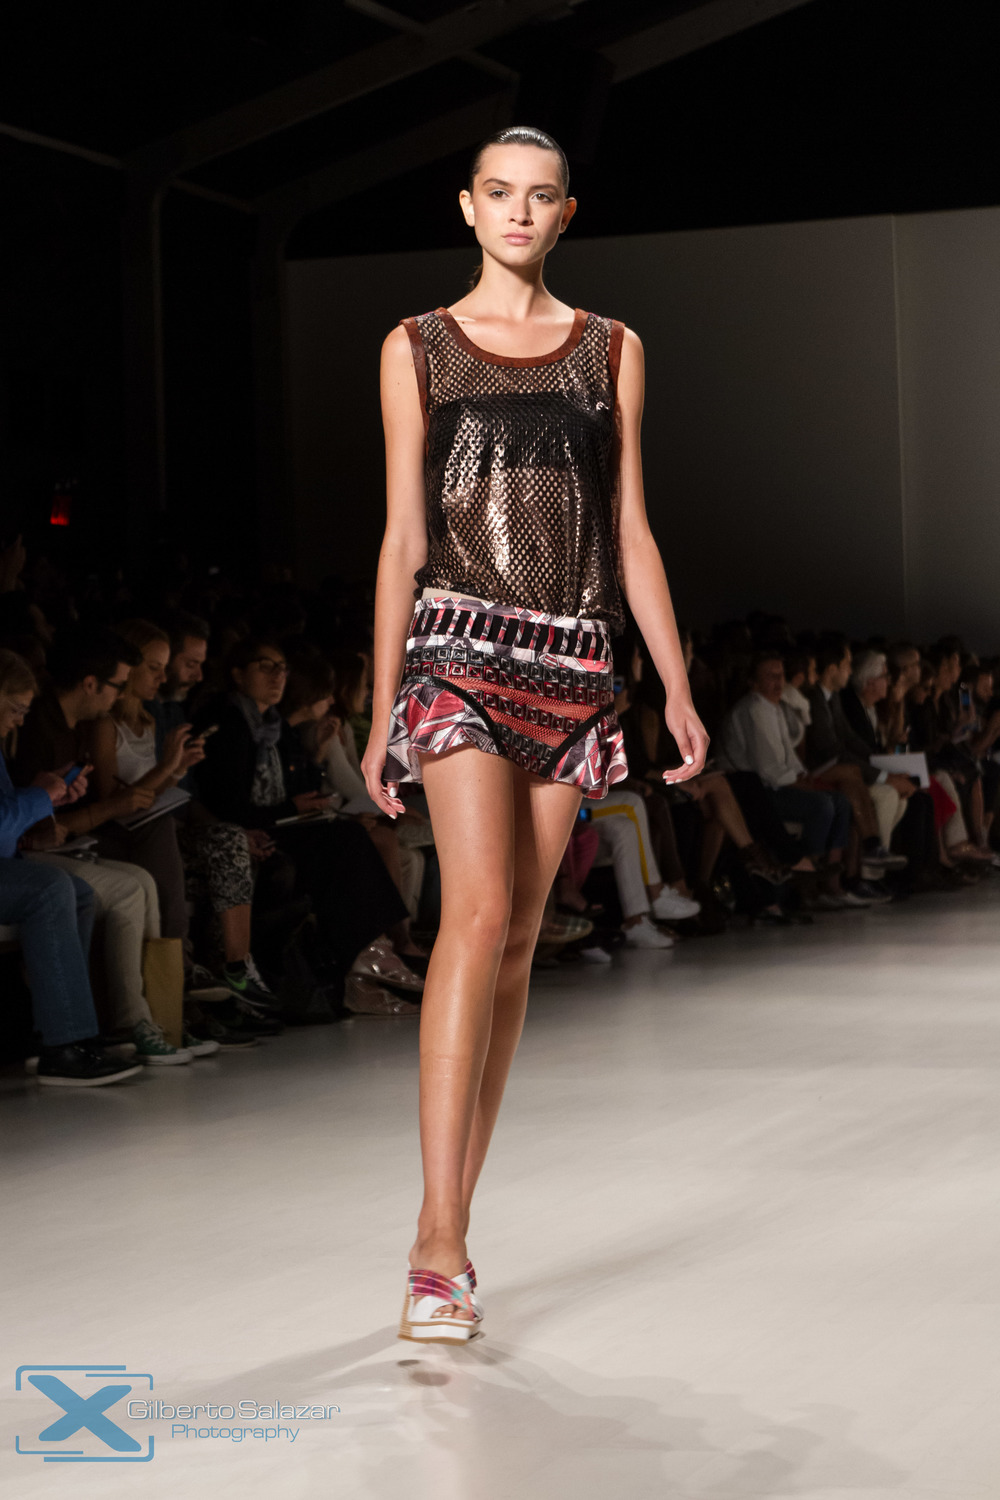 New York Fashion Week 2014 by Gilberto Salazar-13.jpg